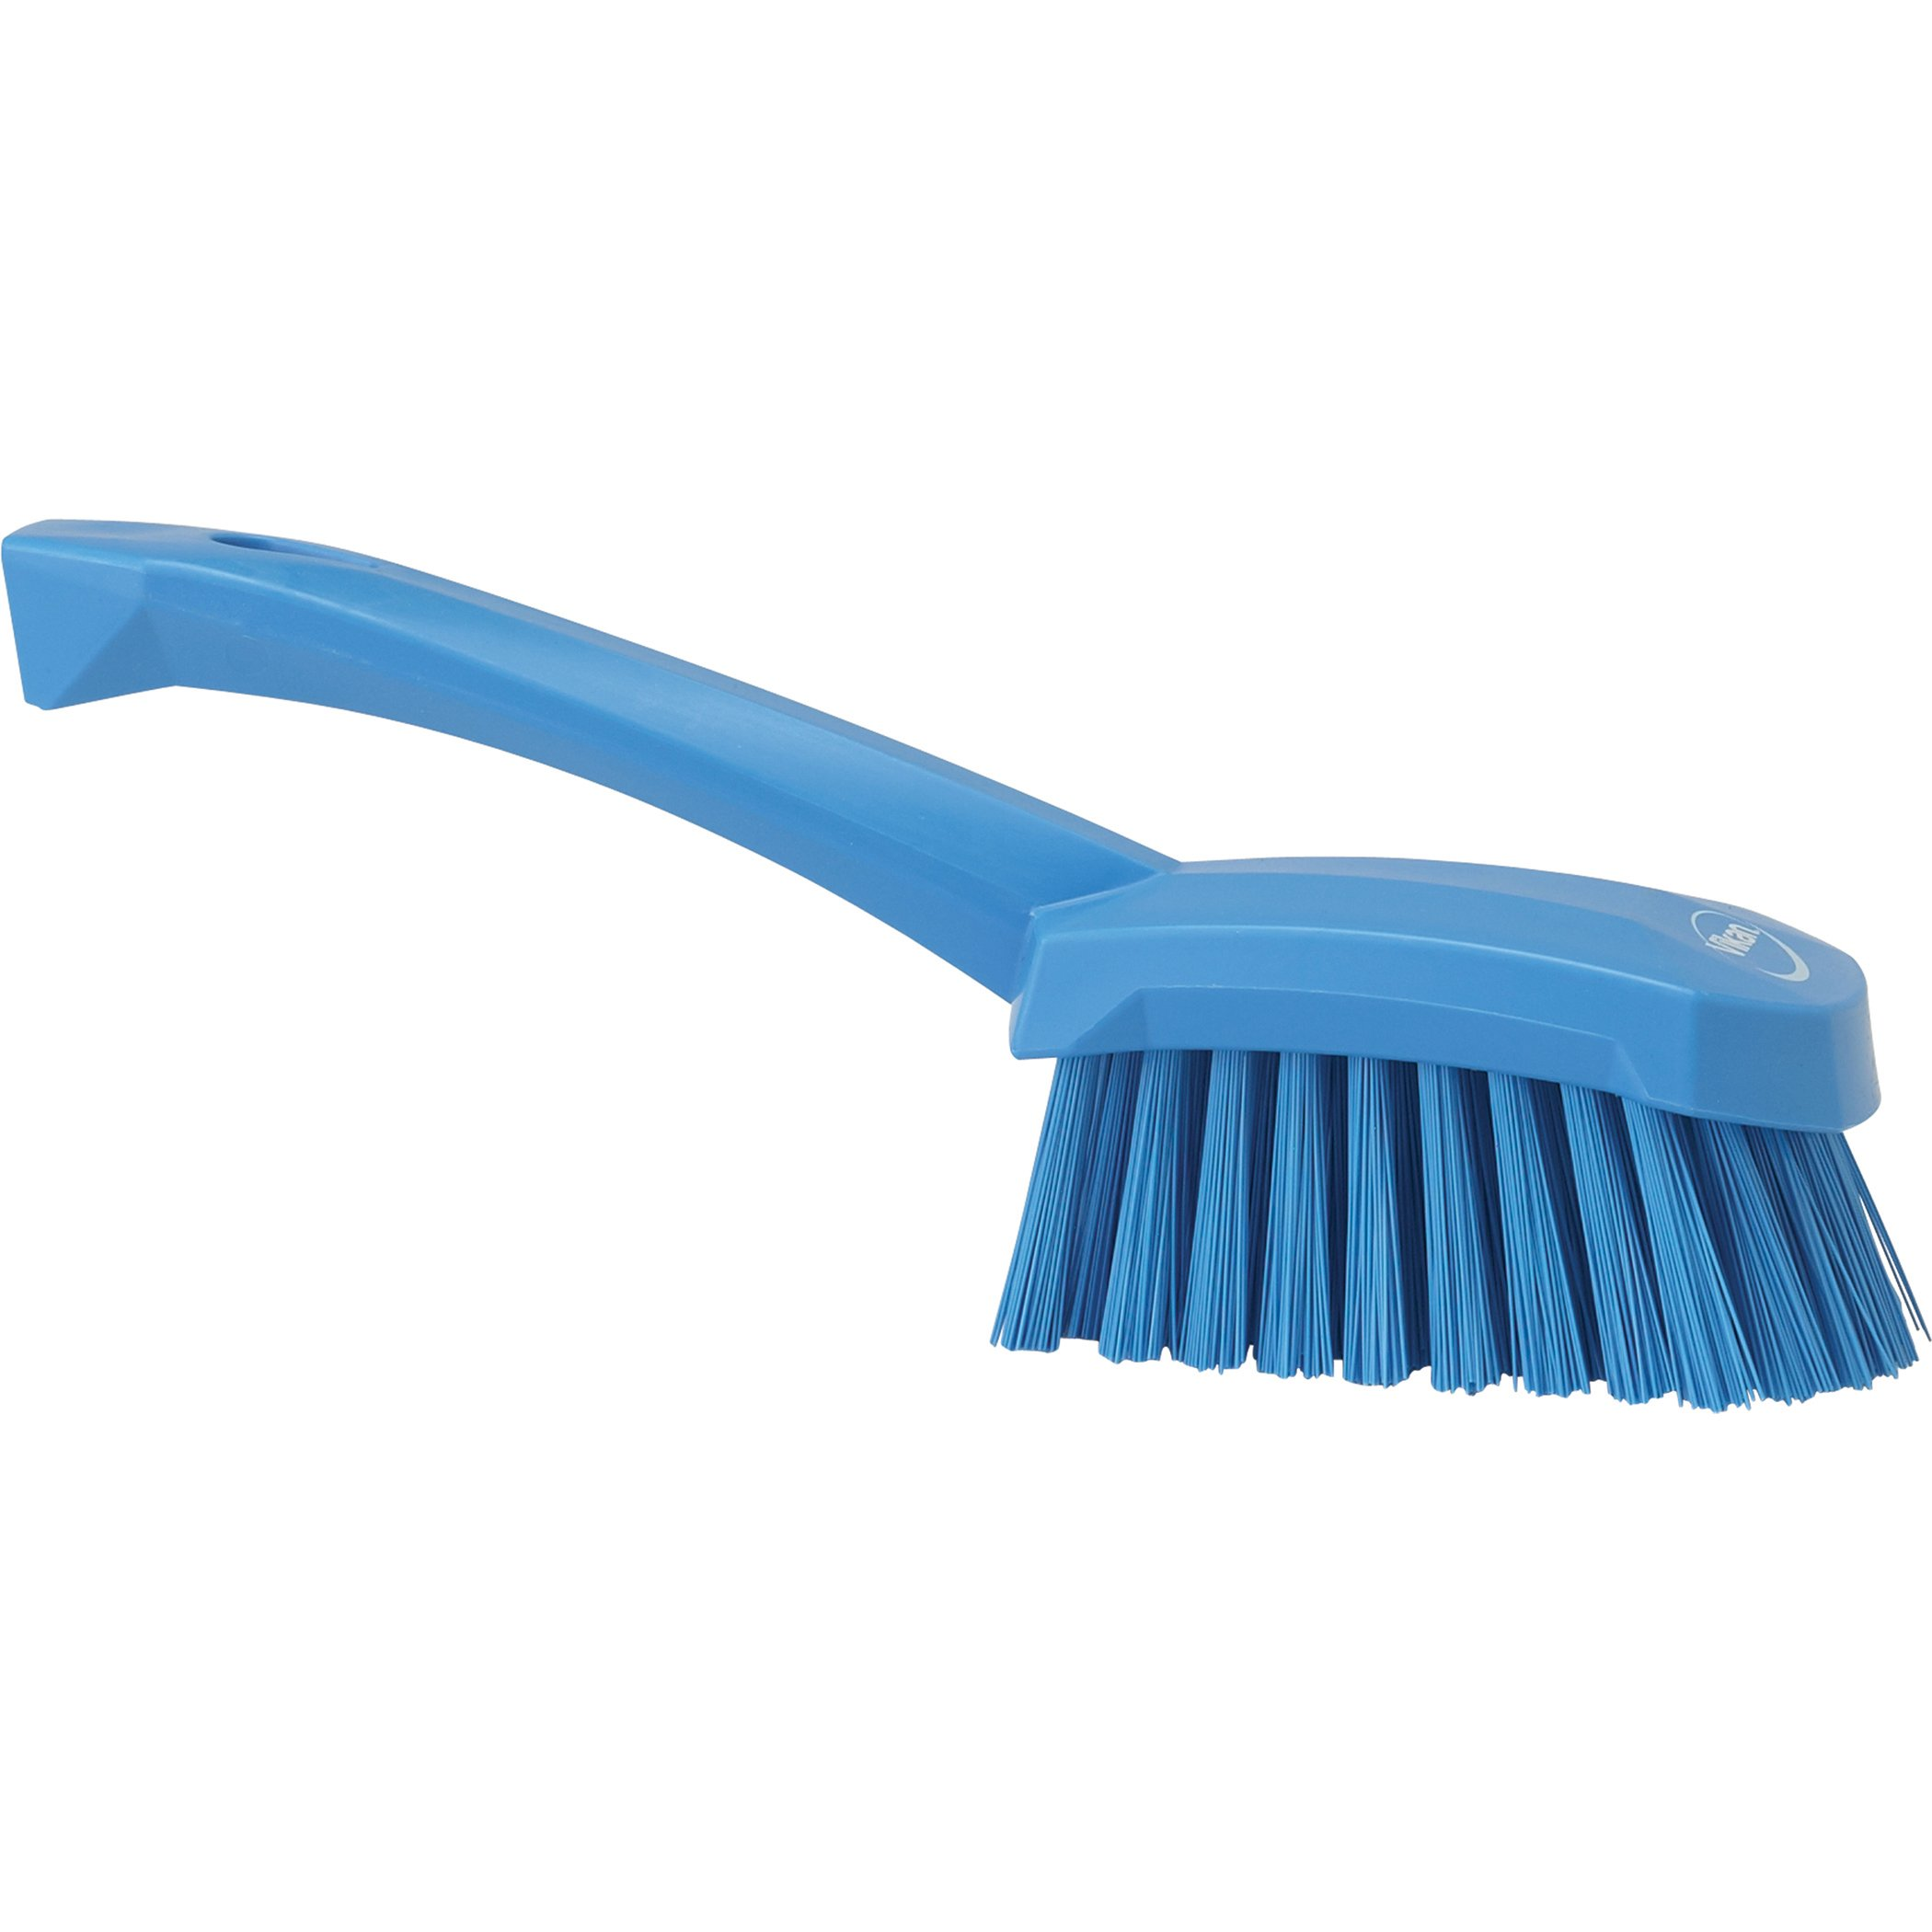 Vikan 41923 Heavy Duty Sweep Hand Brush, Polypropylene, Polyester Stiff Bristle, 10'', Blue by Vikan (Image #2)